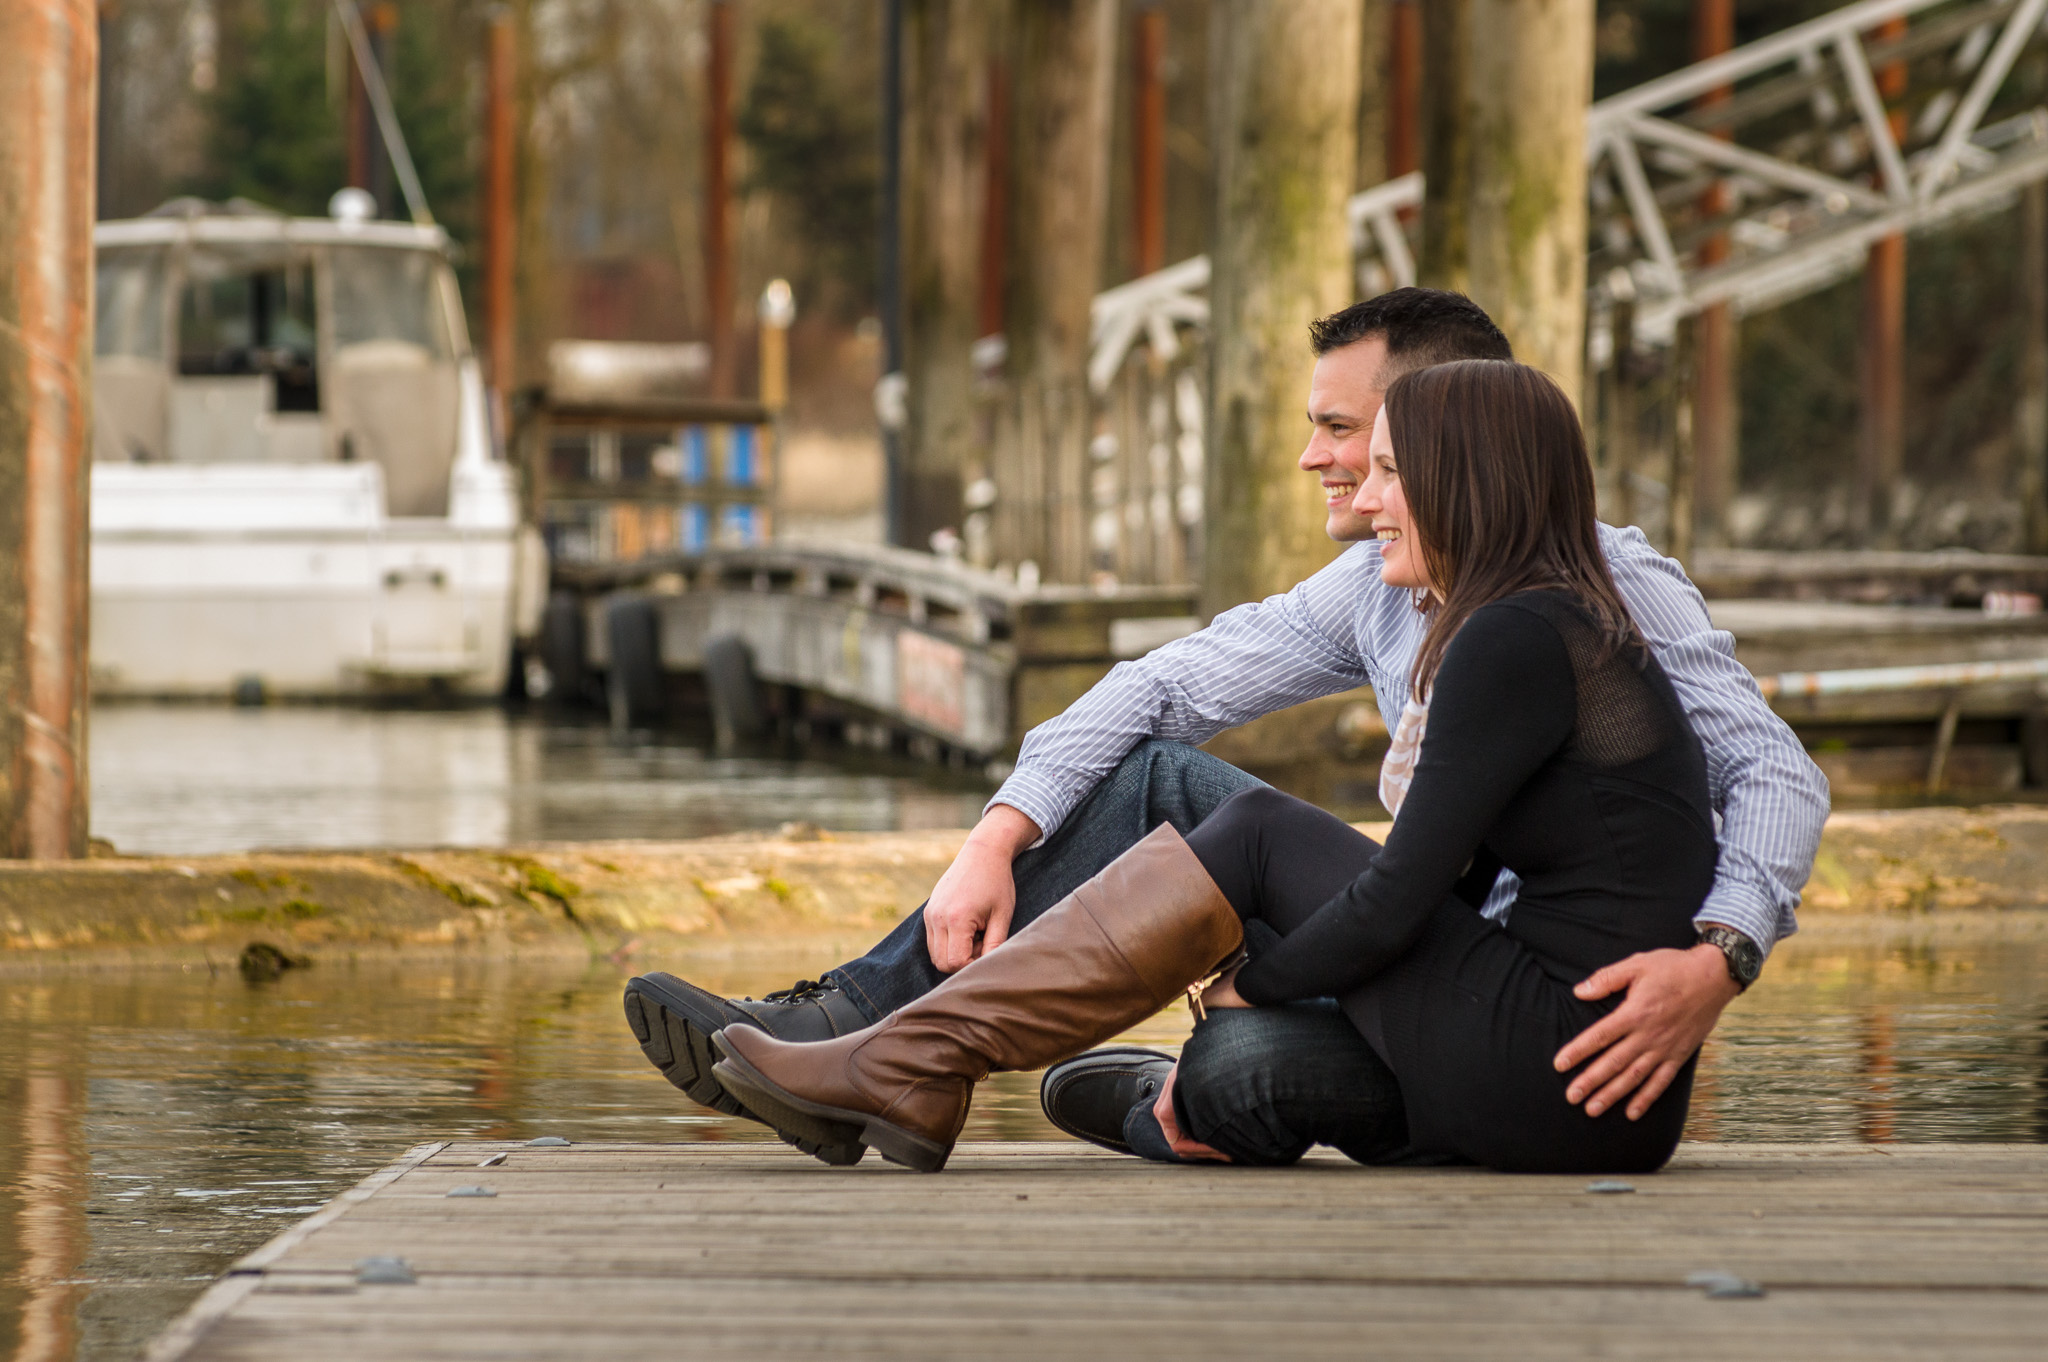 Engagement photography by Photographer Alan Bailward - http://bailwardphotography.com